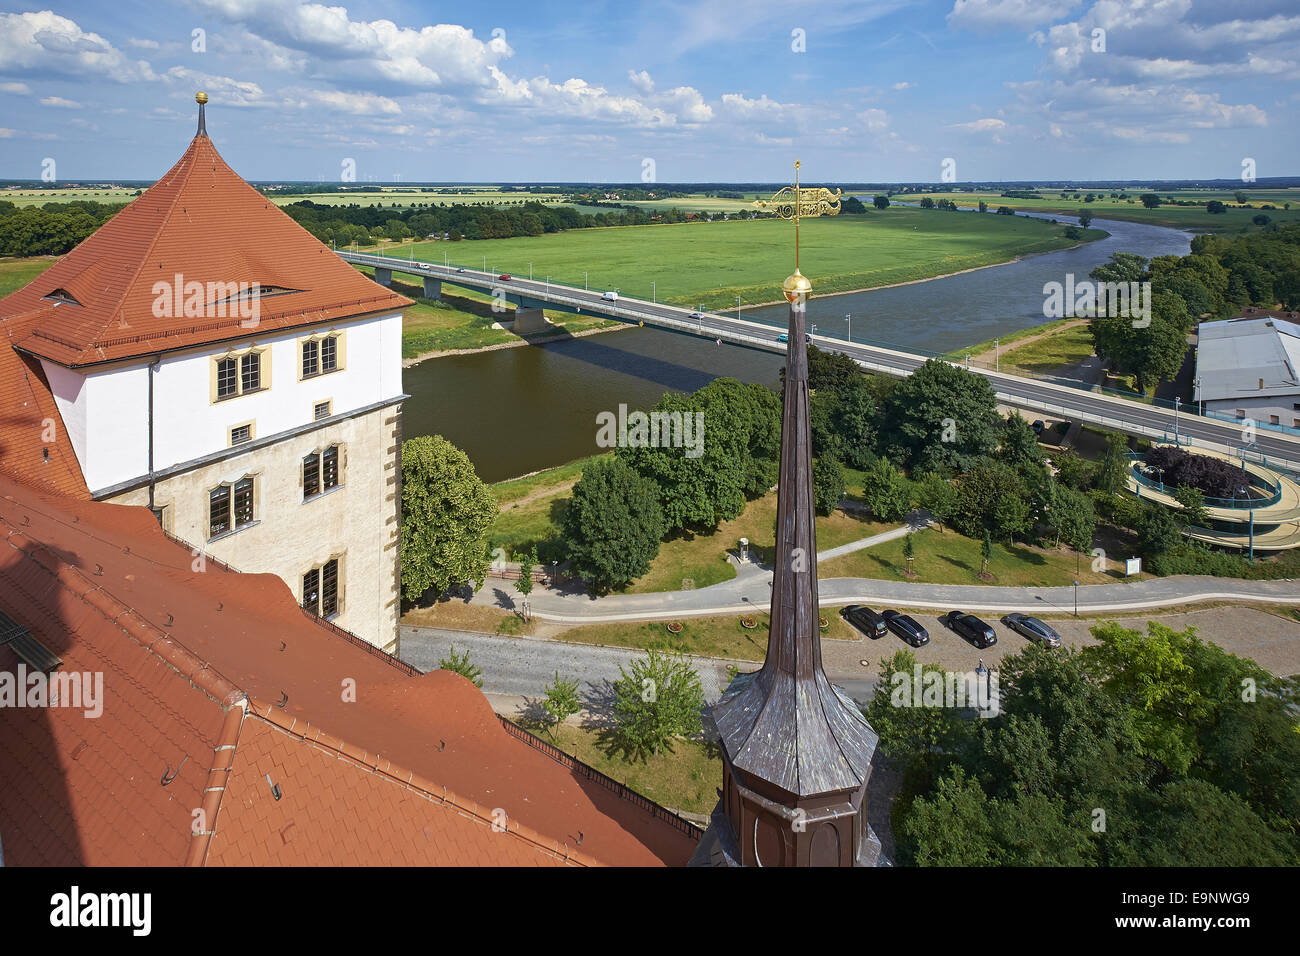 Elbe river from Castle Hartenfels in Torgau, Germany Stock Photo